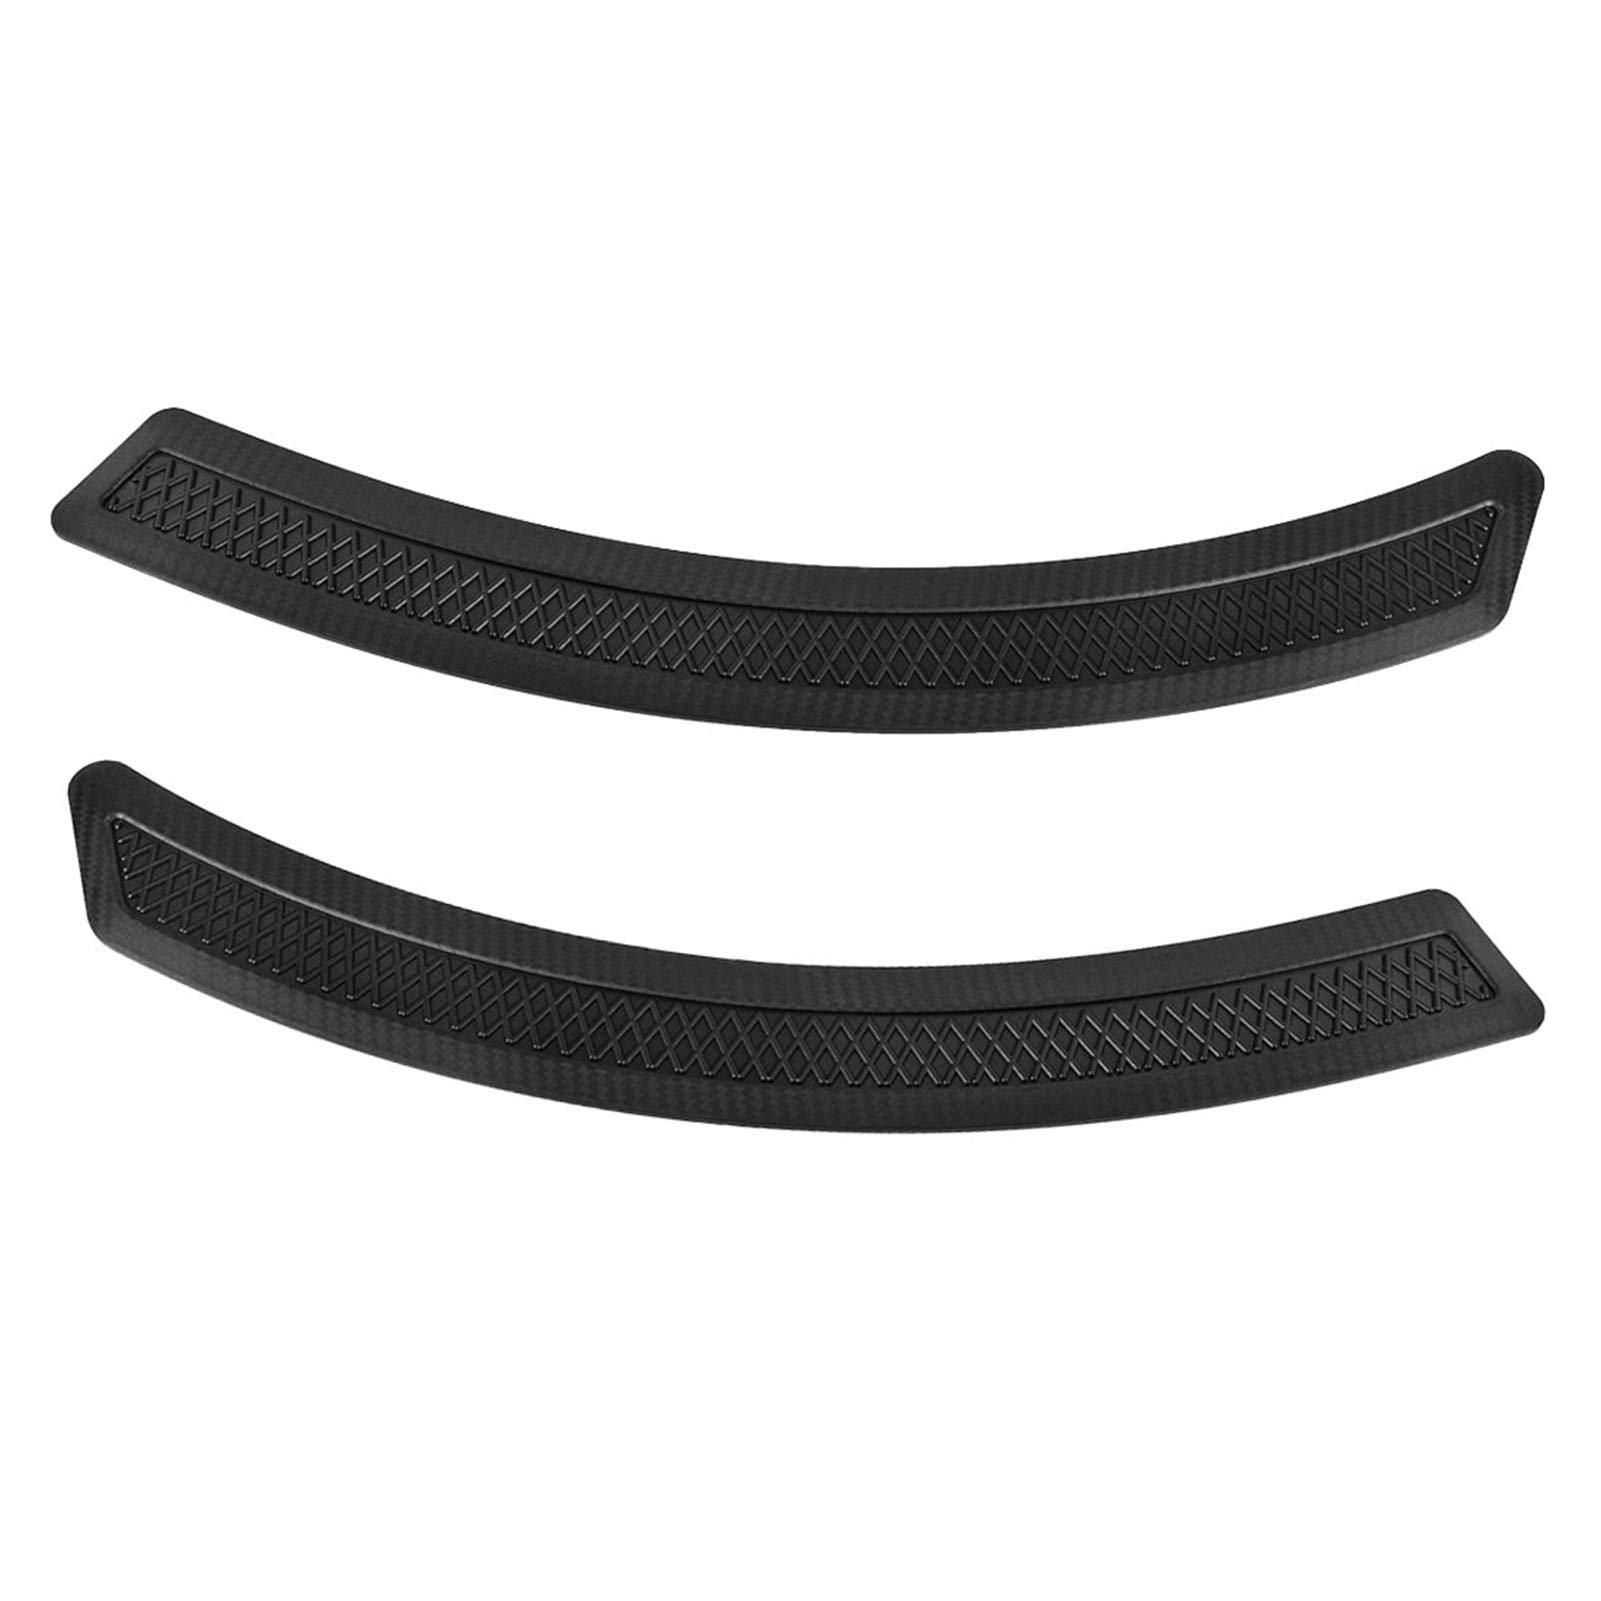 runmade EVO 10 X Style PP Mesh Front Fender Side Vent Cover Compatible with Mitsubishi 08-15 Lancer (Pack of 2)